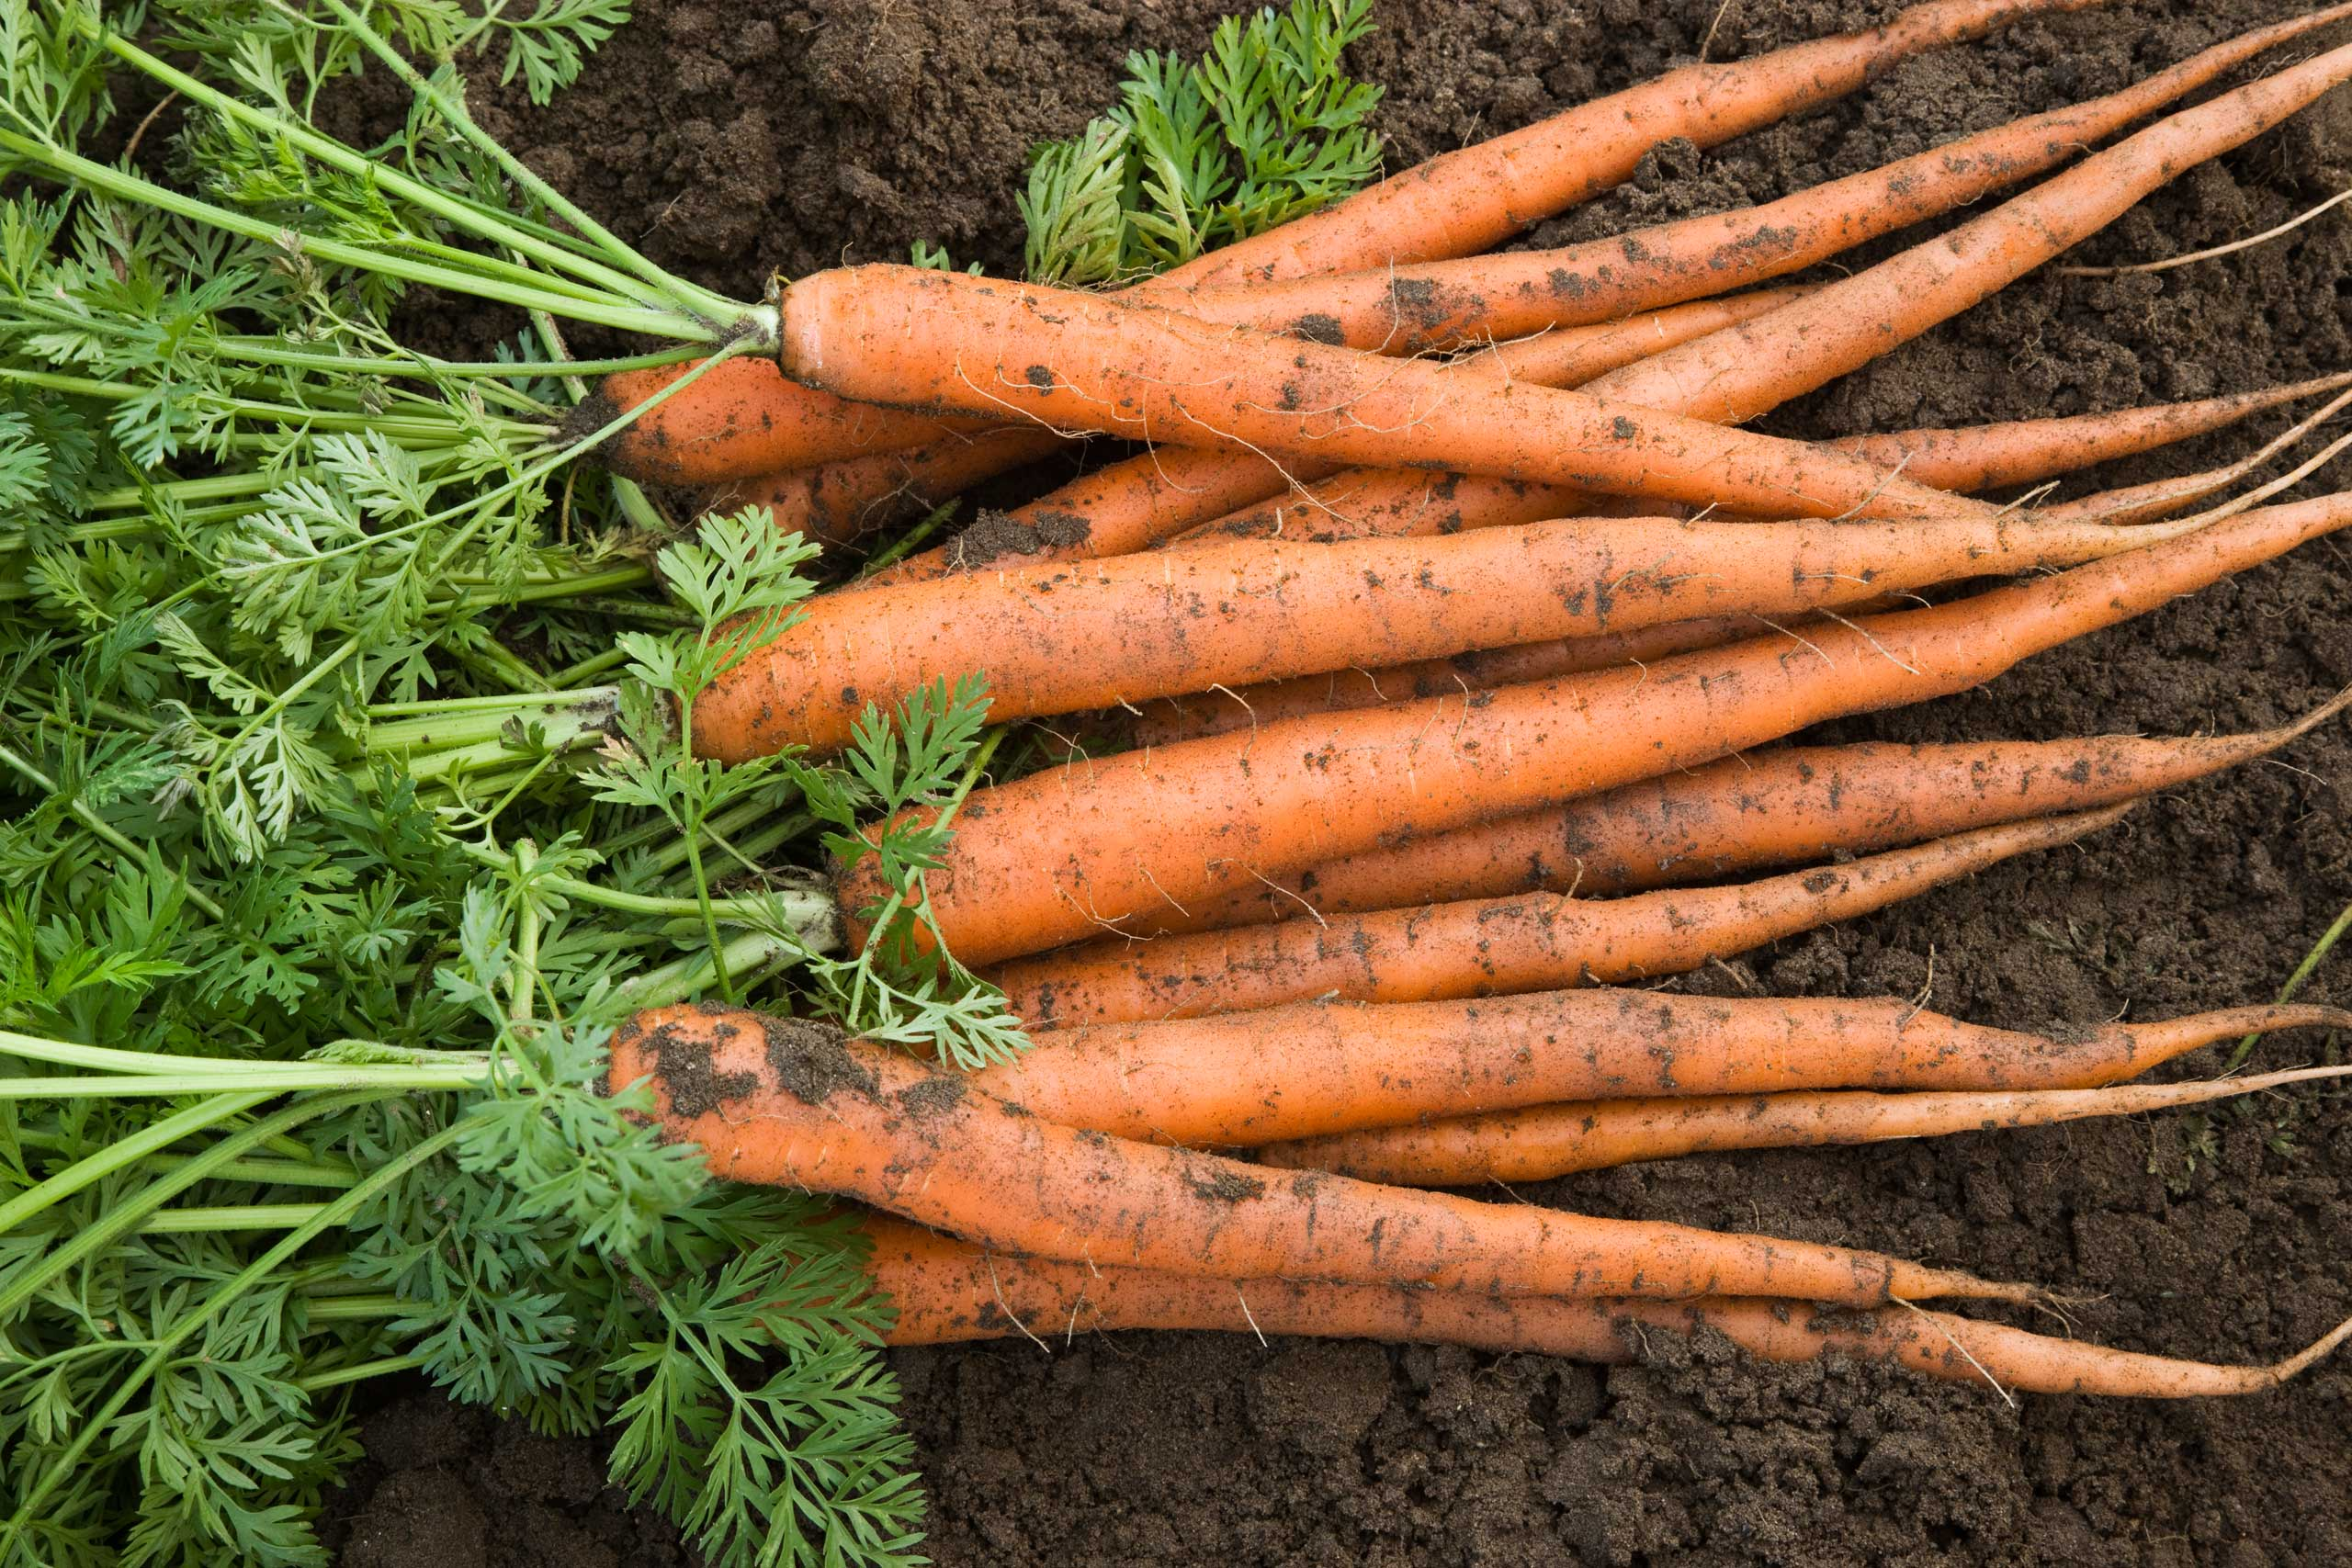 Harvested carrots lying in soil